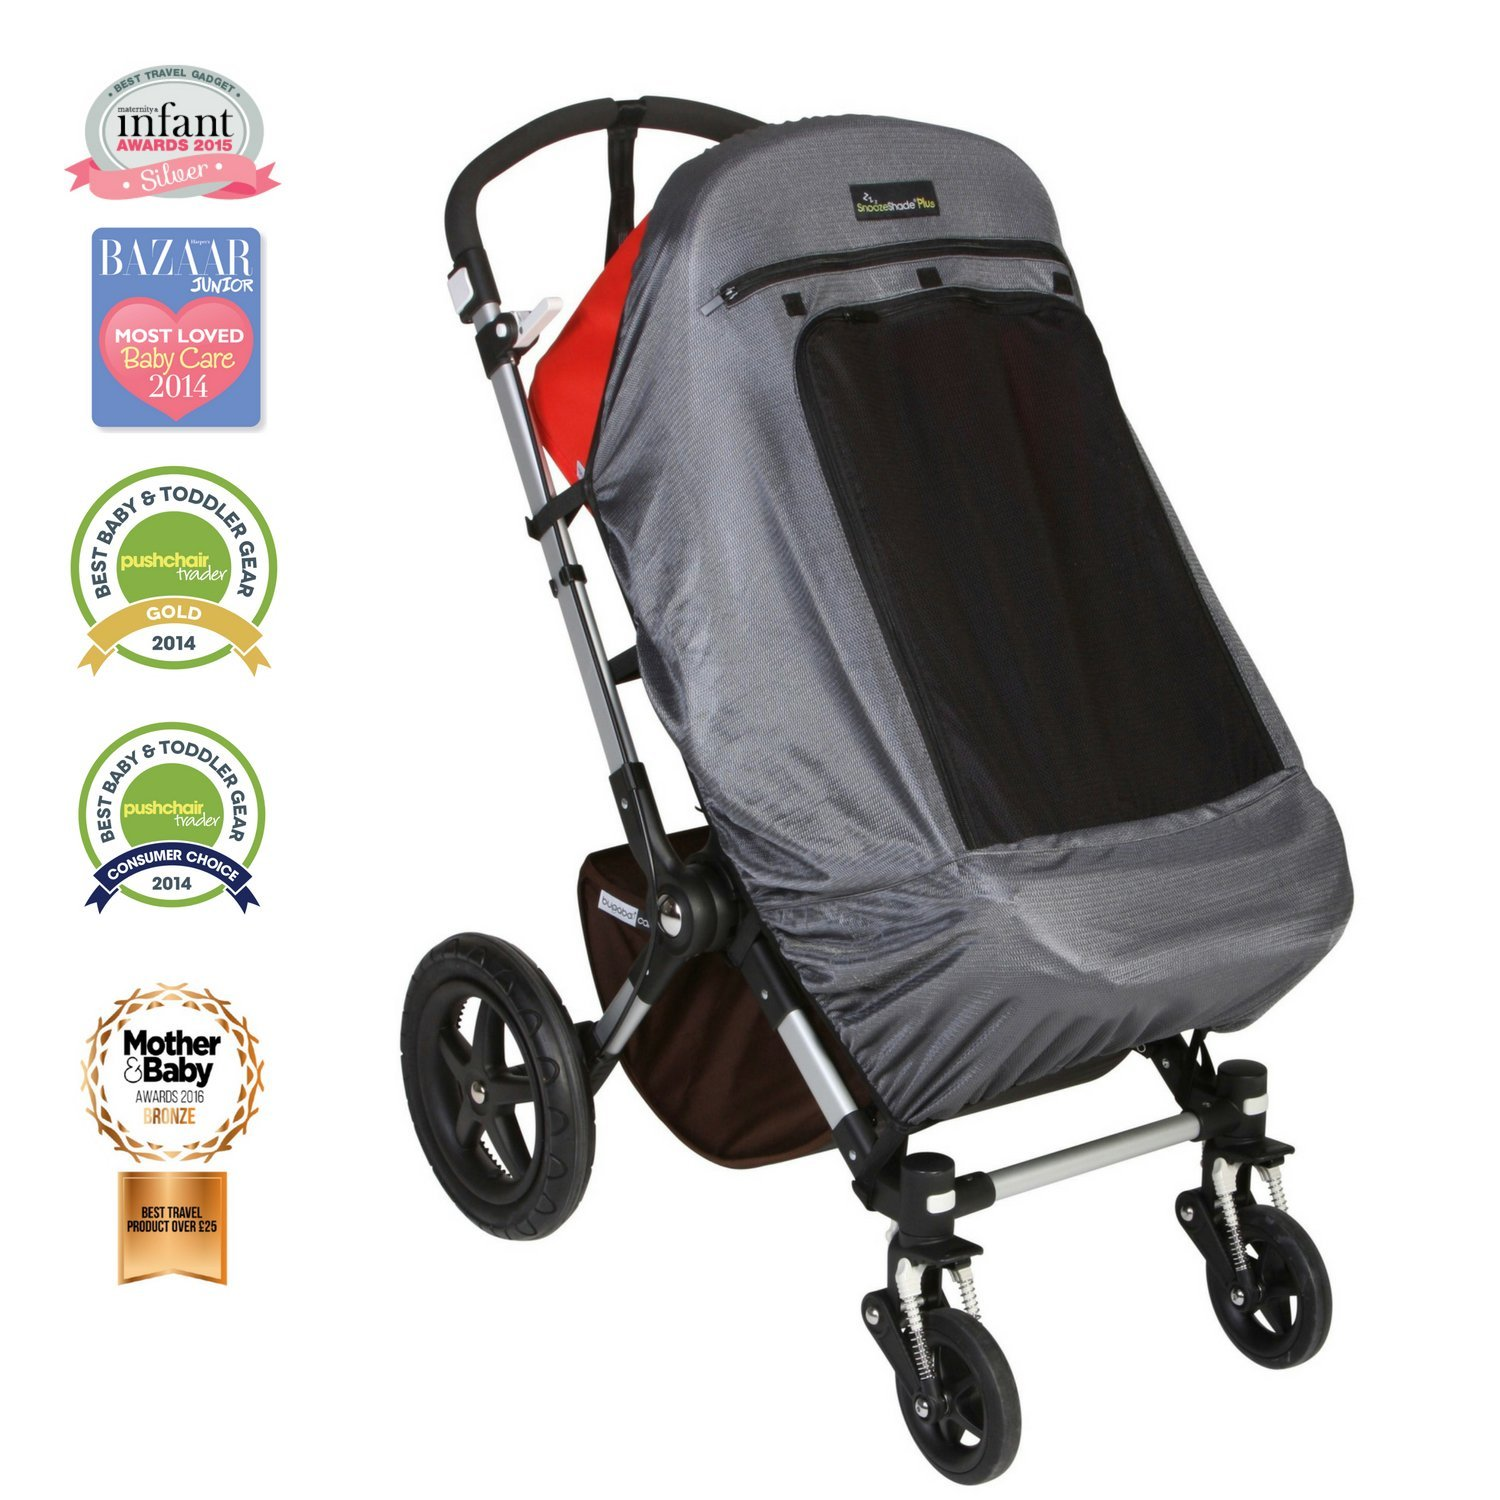 Snoozeshade Plus Deluxe Sunshade and Baby Sleep Aid for Single Strollers/Joggers/Prams product